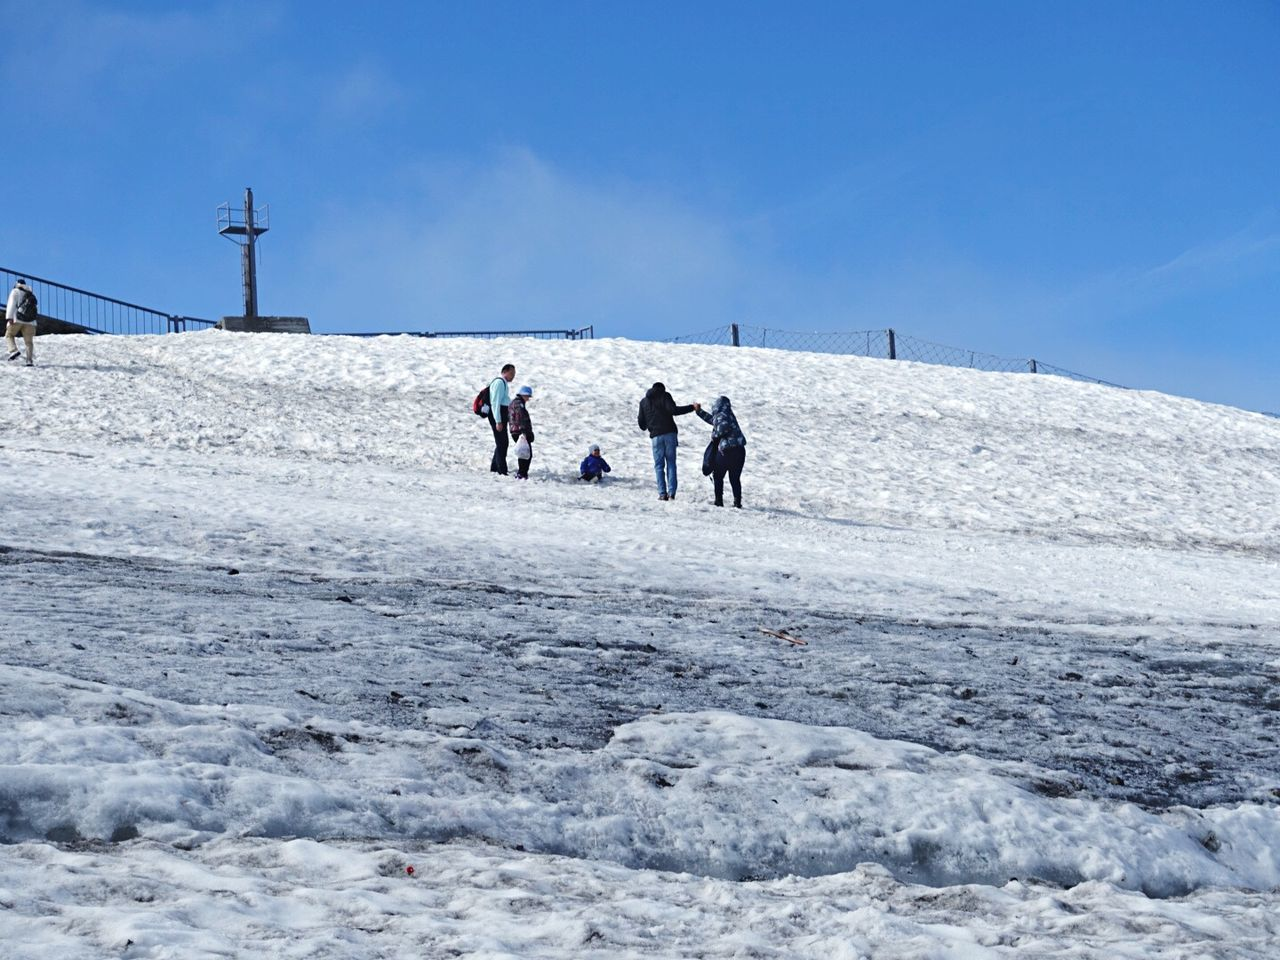 real people, winter, nature, snow, cold temperature, outdoors, walking, day, sky, lifestyles, leisure activity, men, beauty in nature, adventure, togetherness, salt - mineral, people